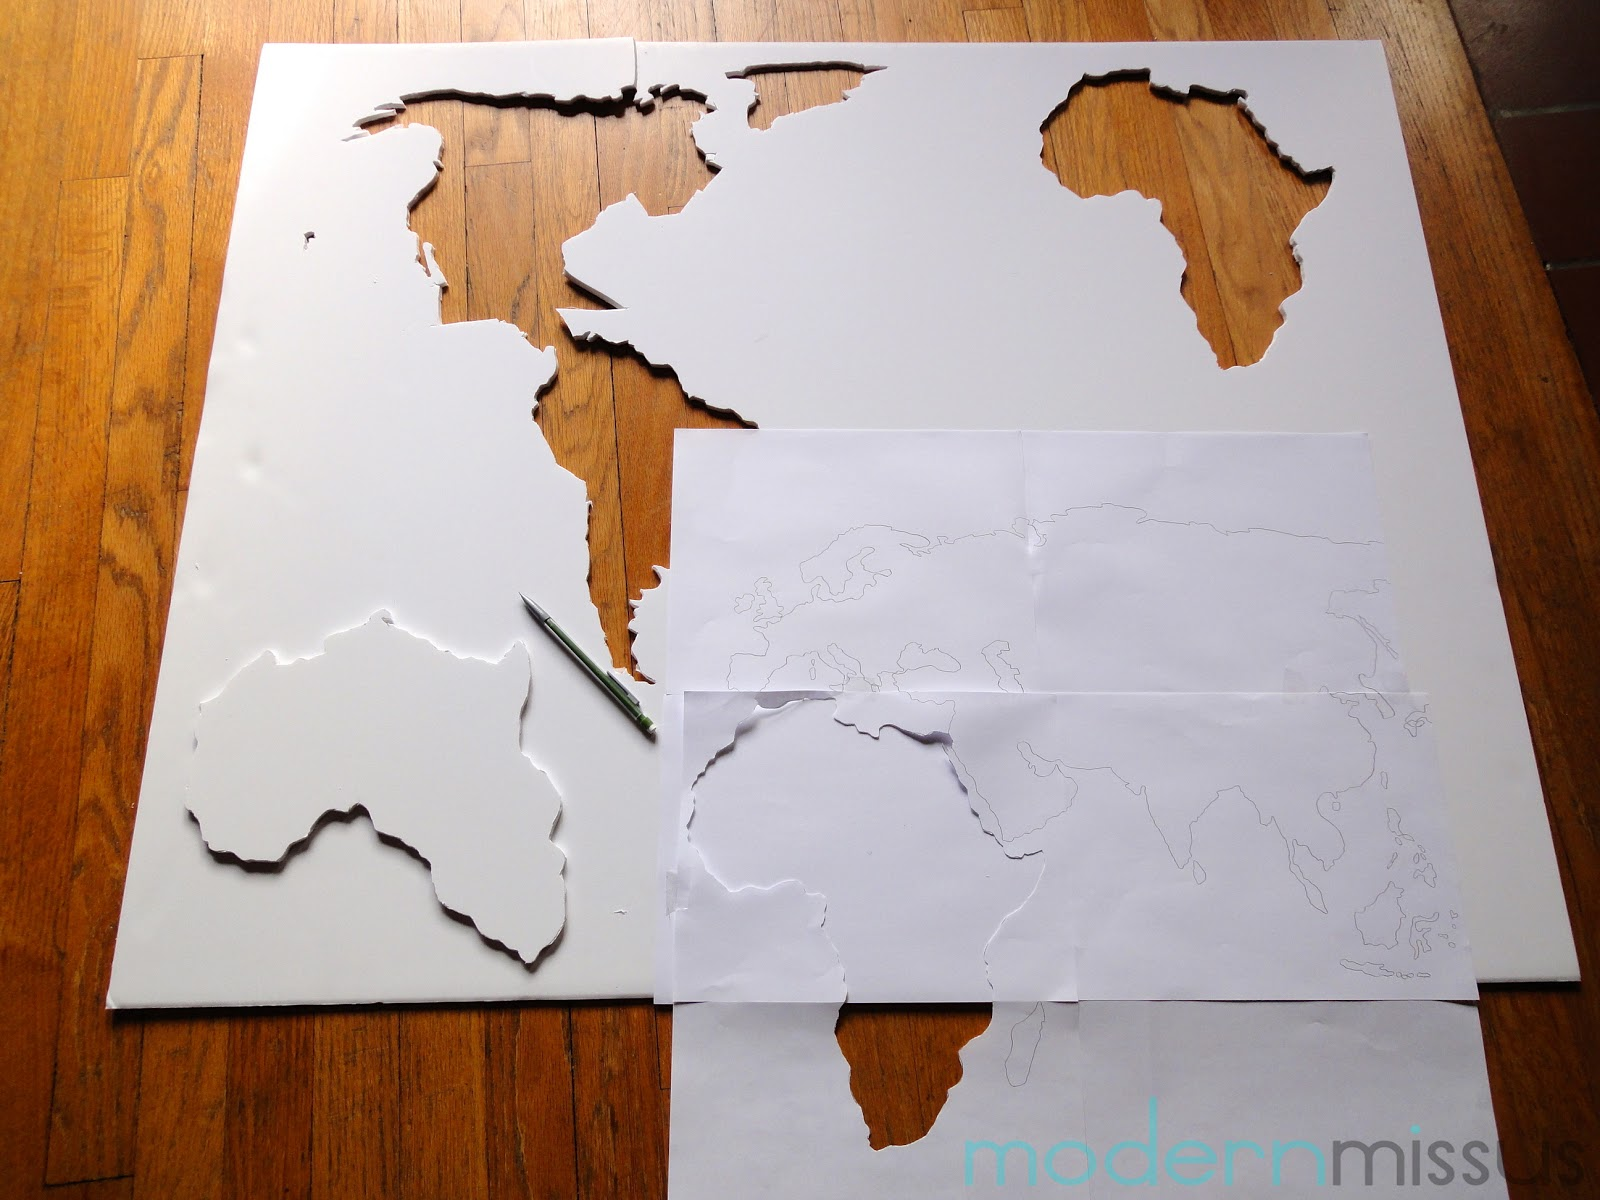 Modern missus diy world map wall art diy world map wall art gumiabroncs Gallery